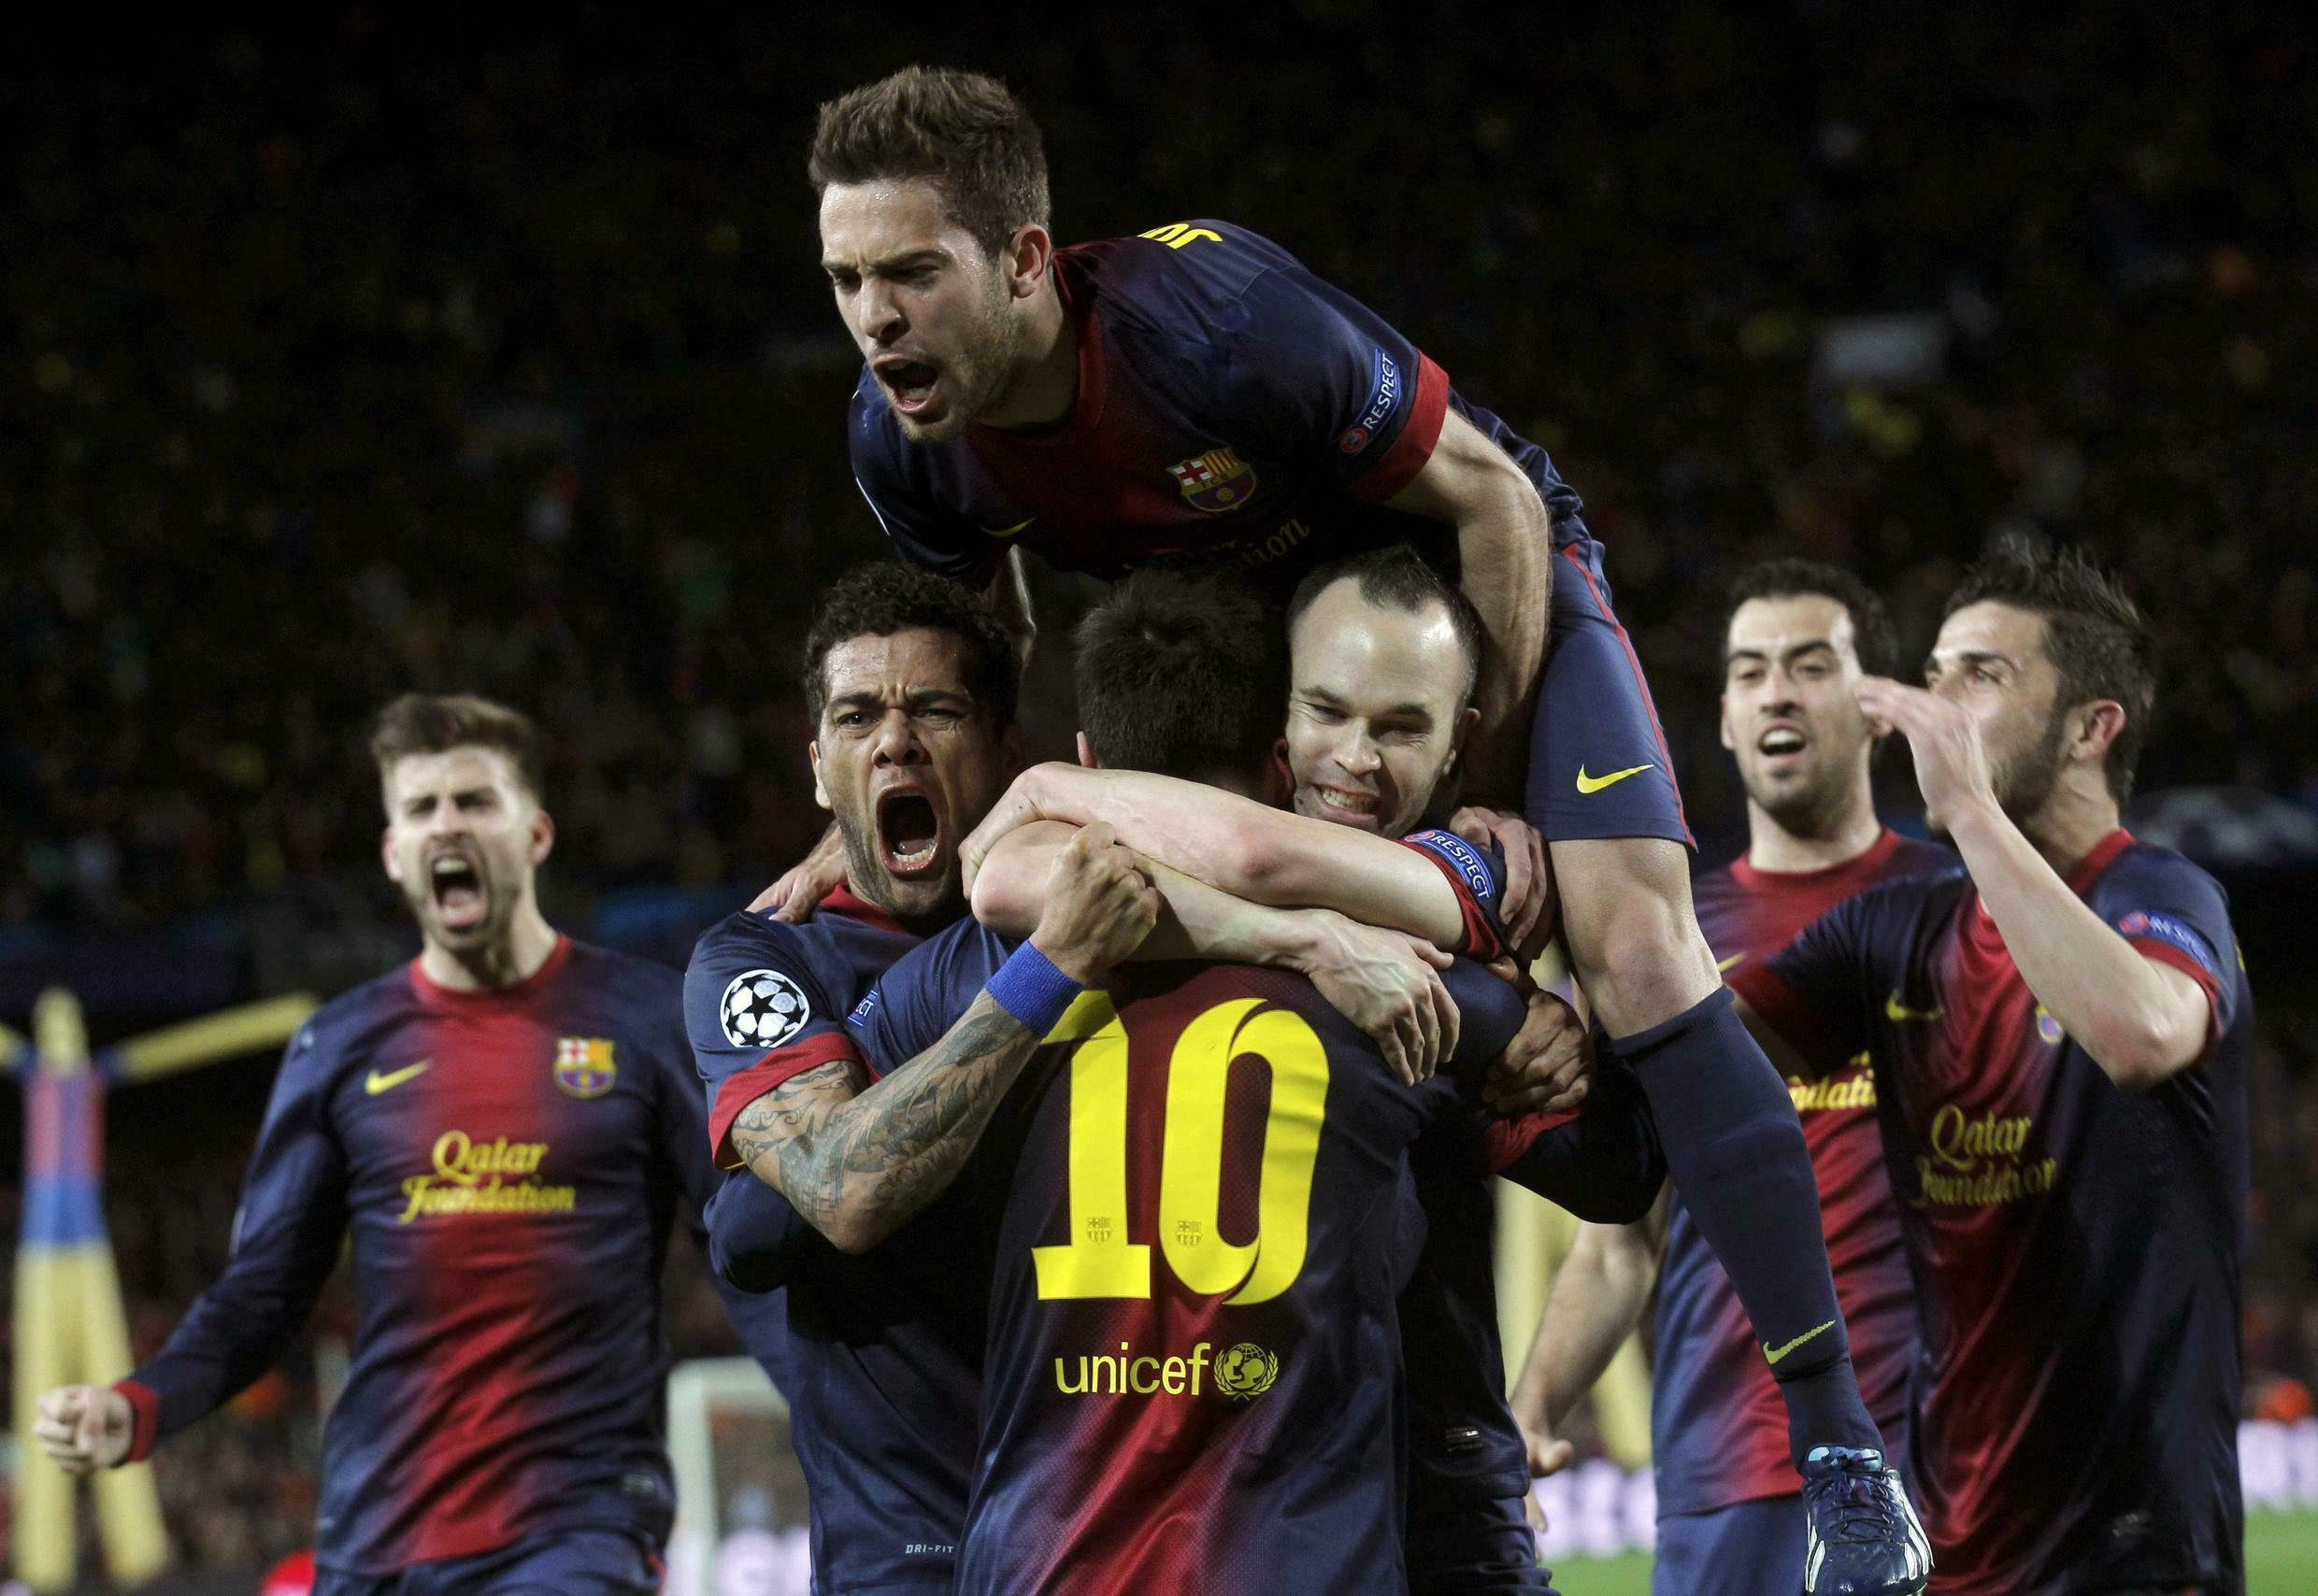 Barcelona's Lionel Messi (10) is congratulated by his team after scoring his second goal against AC Milan, 12 March, 2013